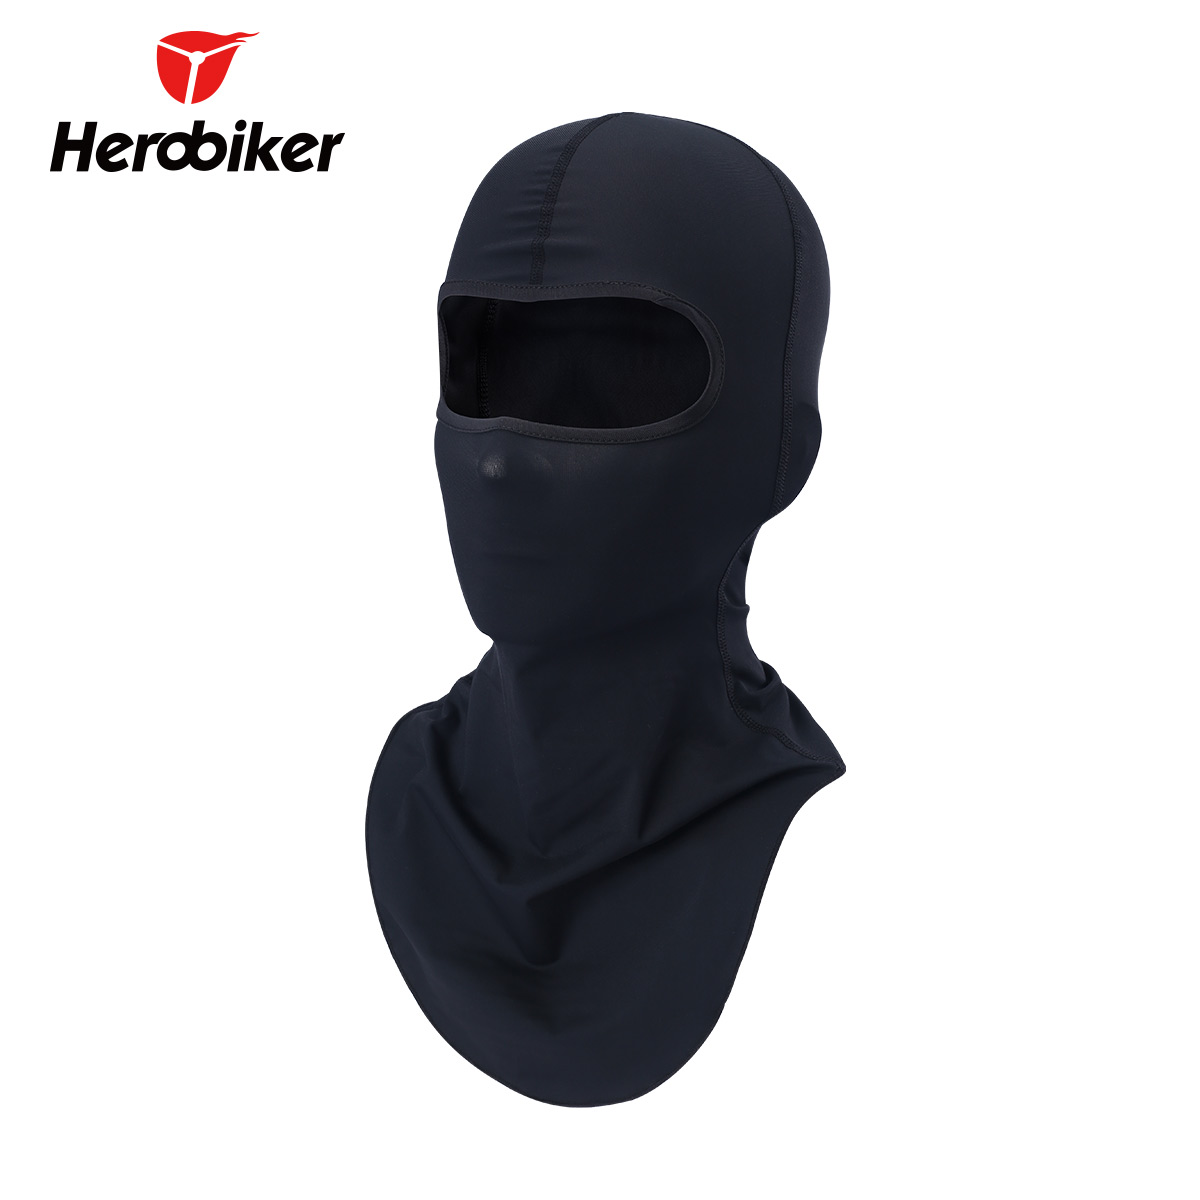 HEROBIKER Men Black Balaclava Moto Mask Windproof Face Mask Motorcycle Face Mask Cycling Bike Skiing Military Tactical Paintball balaclava moto face mask motorcycle face shield tactical airsoft paintball cycling bike ski army helmet full face mask